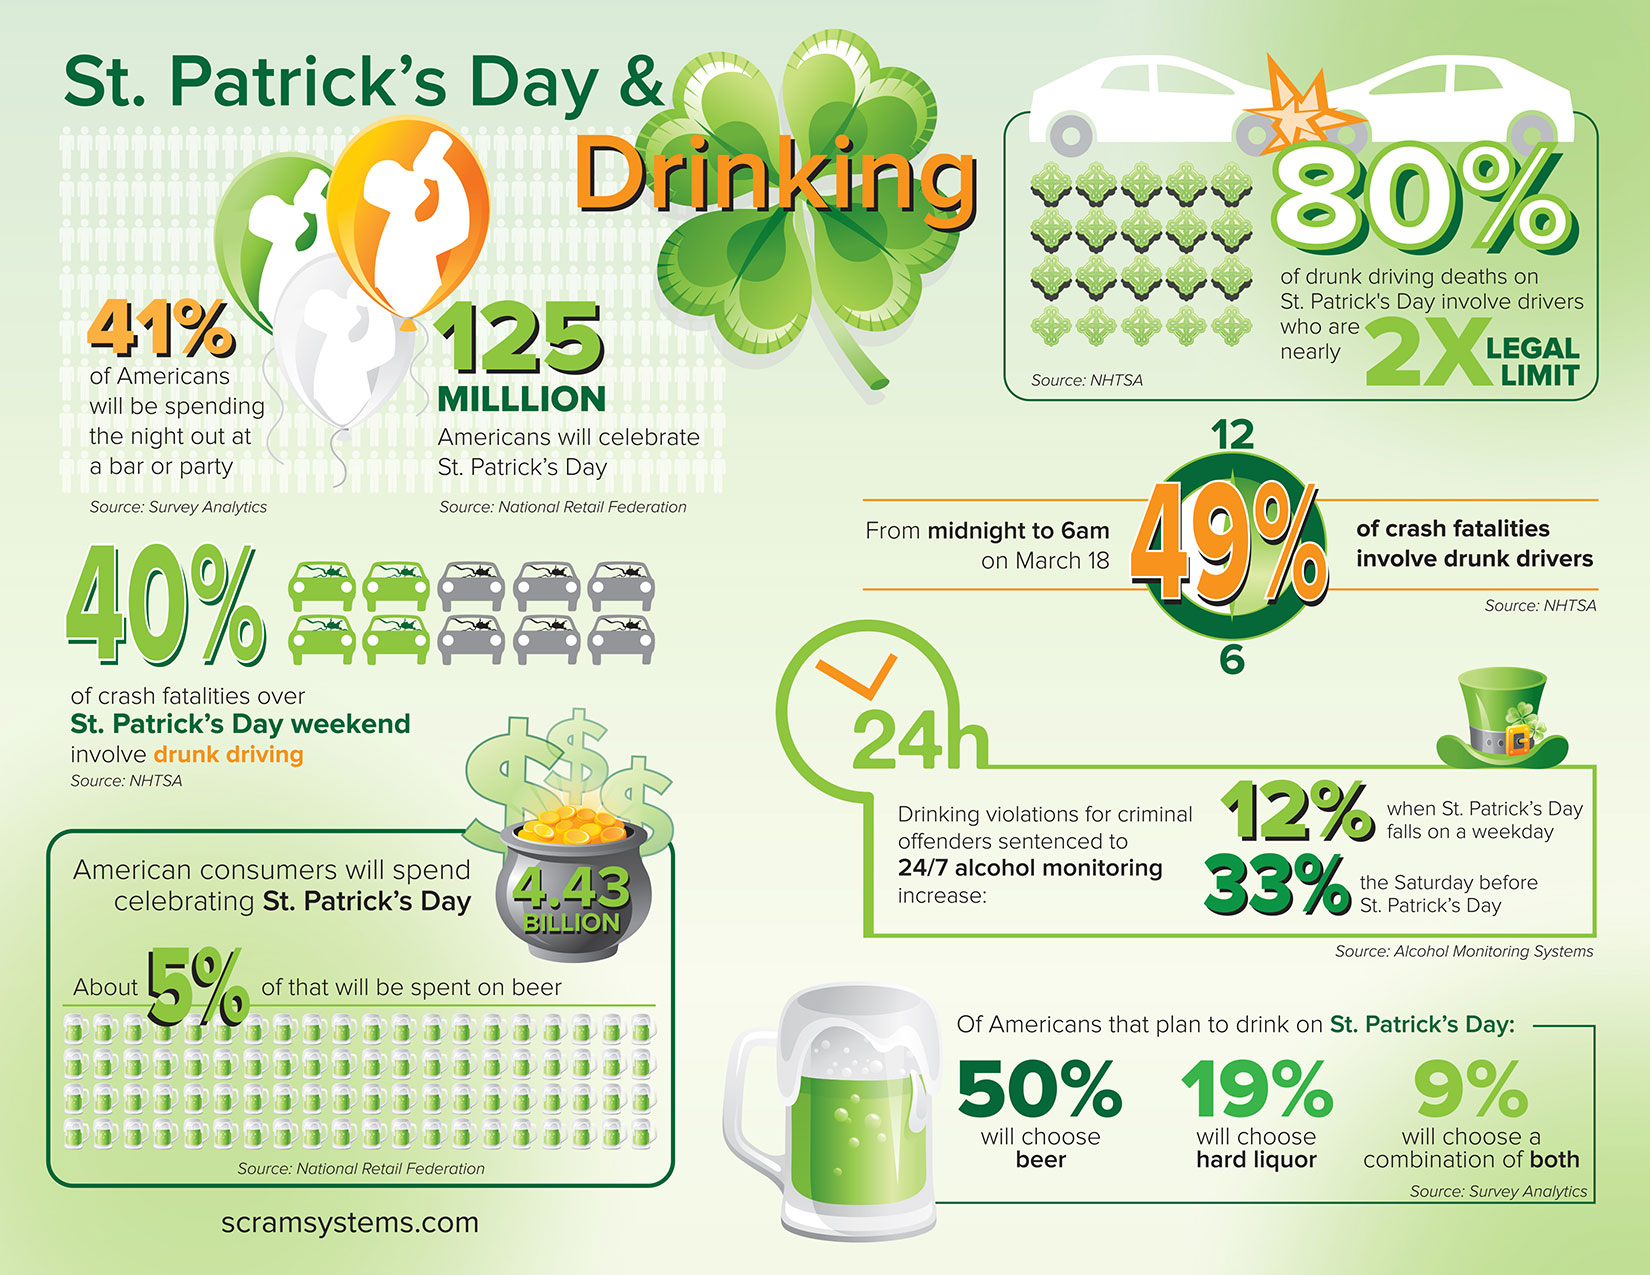 Infographic Binge Drinking Drunk Driving On St Patrick